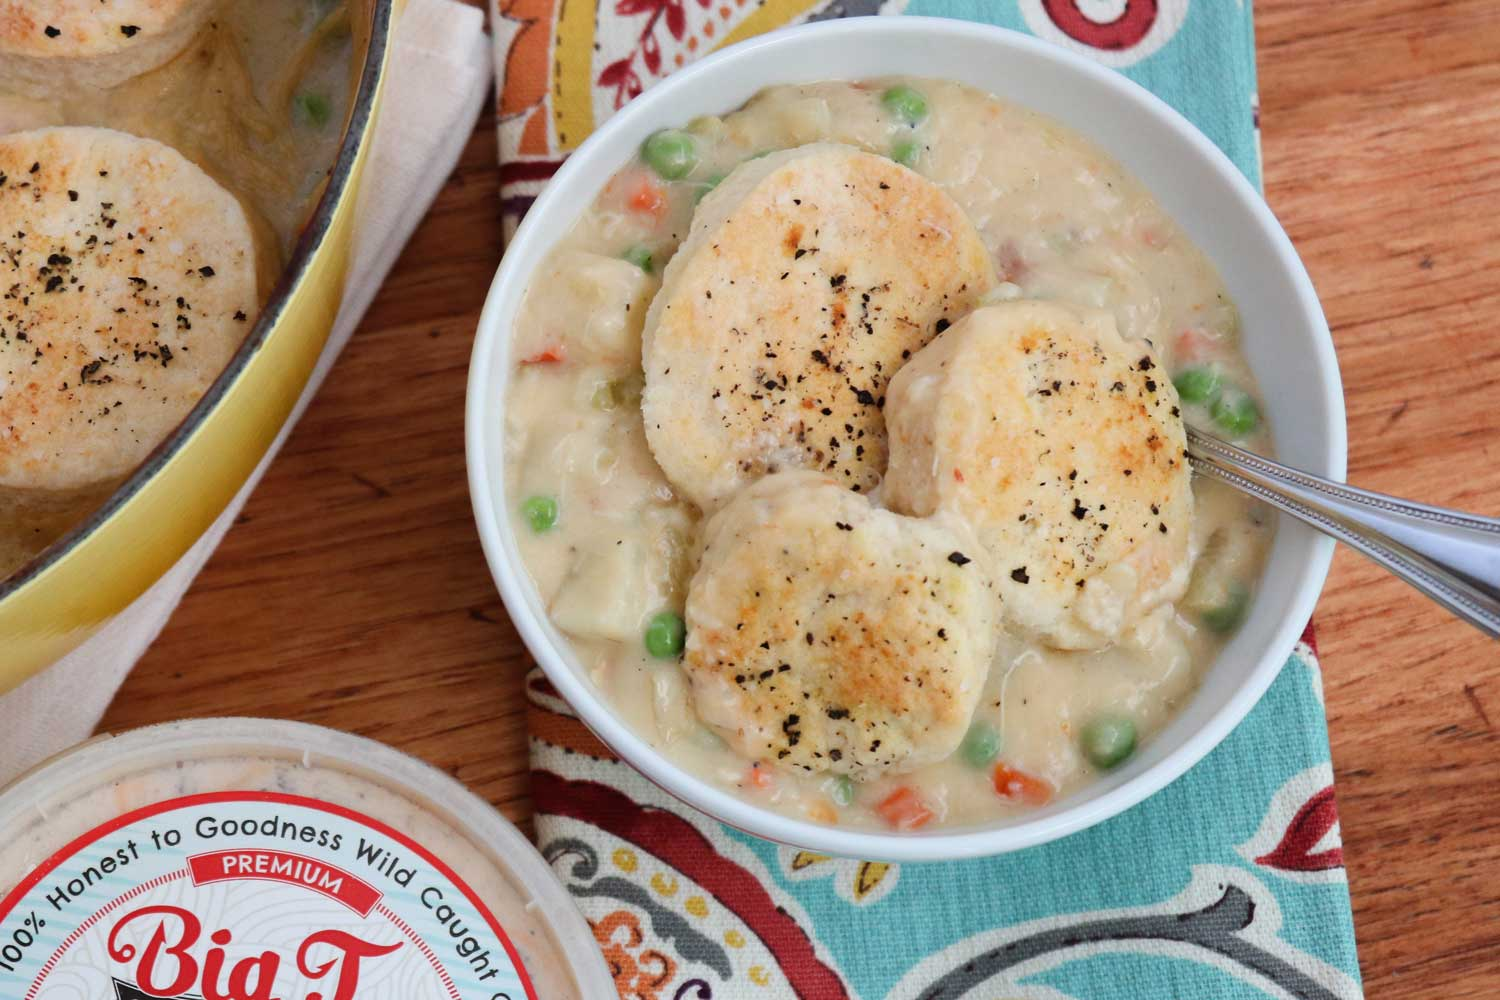 Crab-Pot-Pie-with-Biscuits-serving-suggestion.jpg